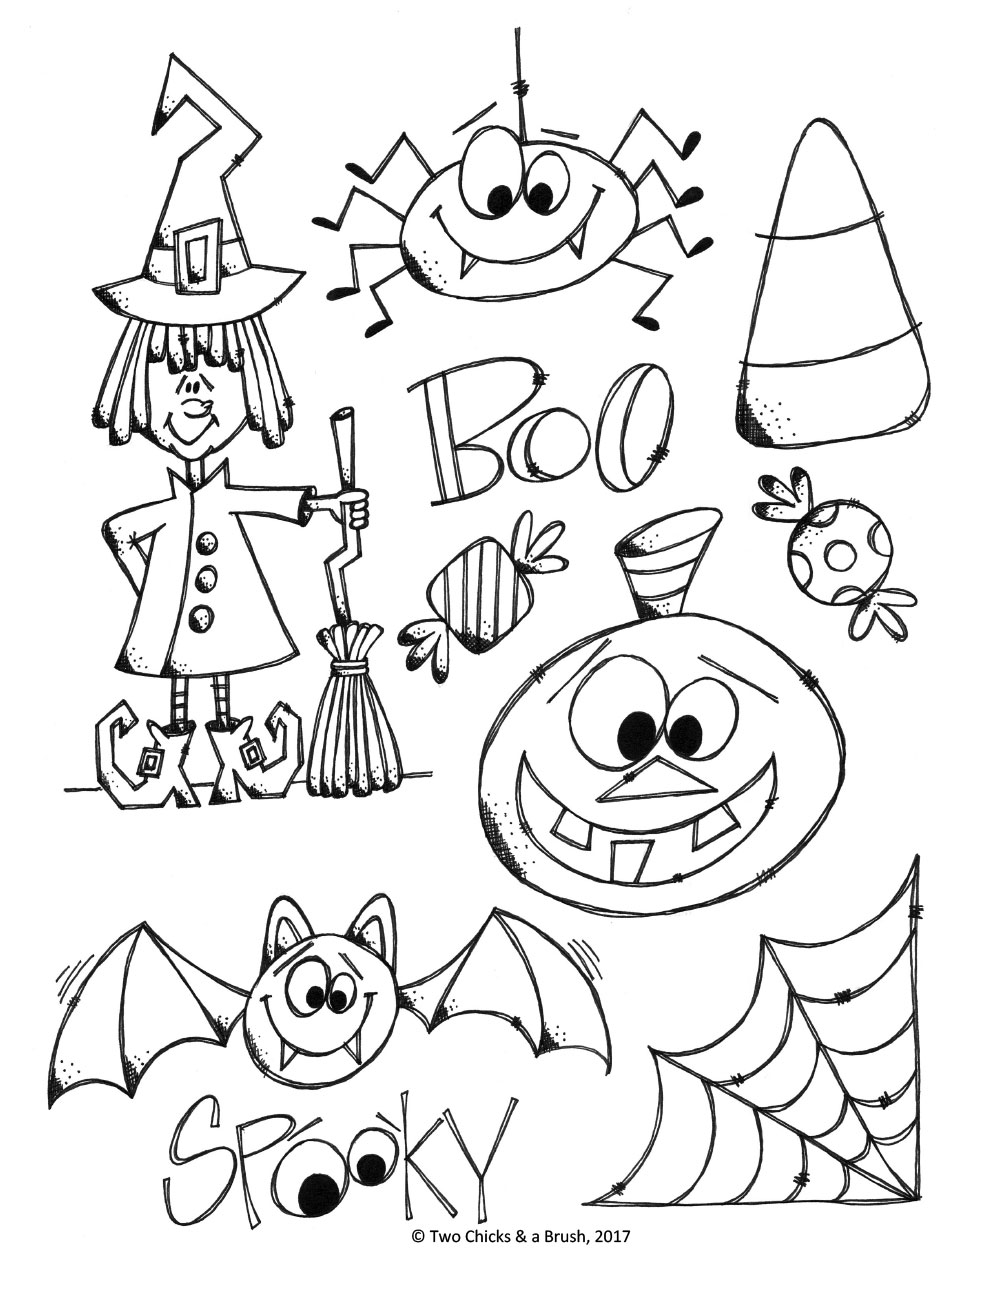 Images Of Halloween Coloring Page Auto Electrical Wiring Diagram Headlight Range Level Sensor Connector Pigtail Plug 0406 Vw Doodles U2013 Pyop Studio Stuff